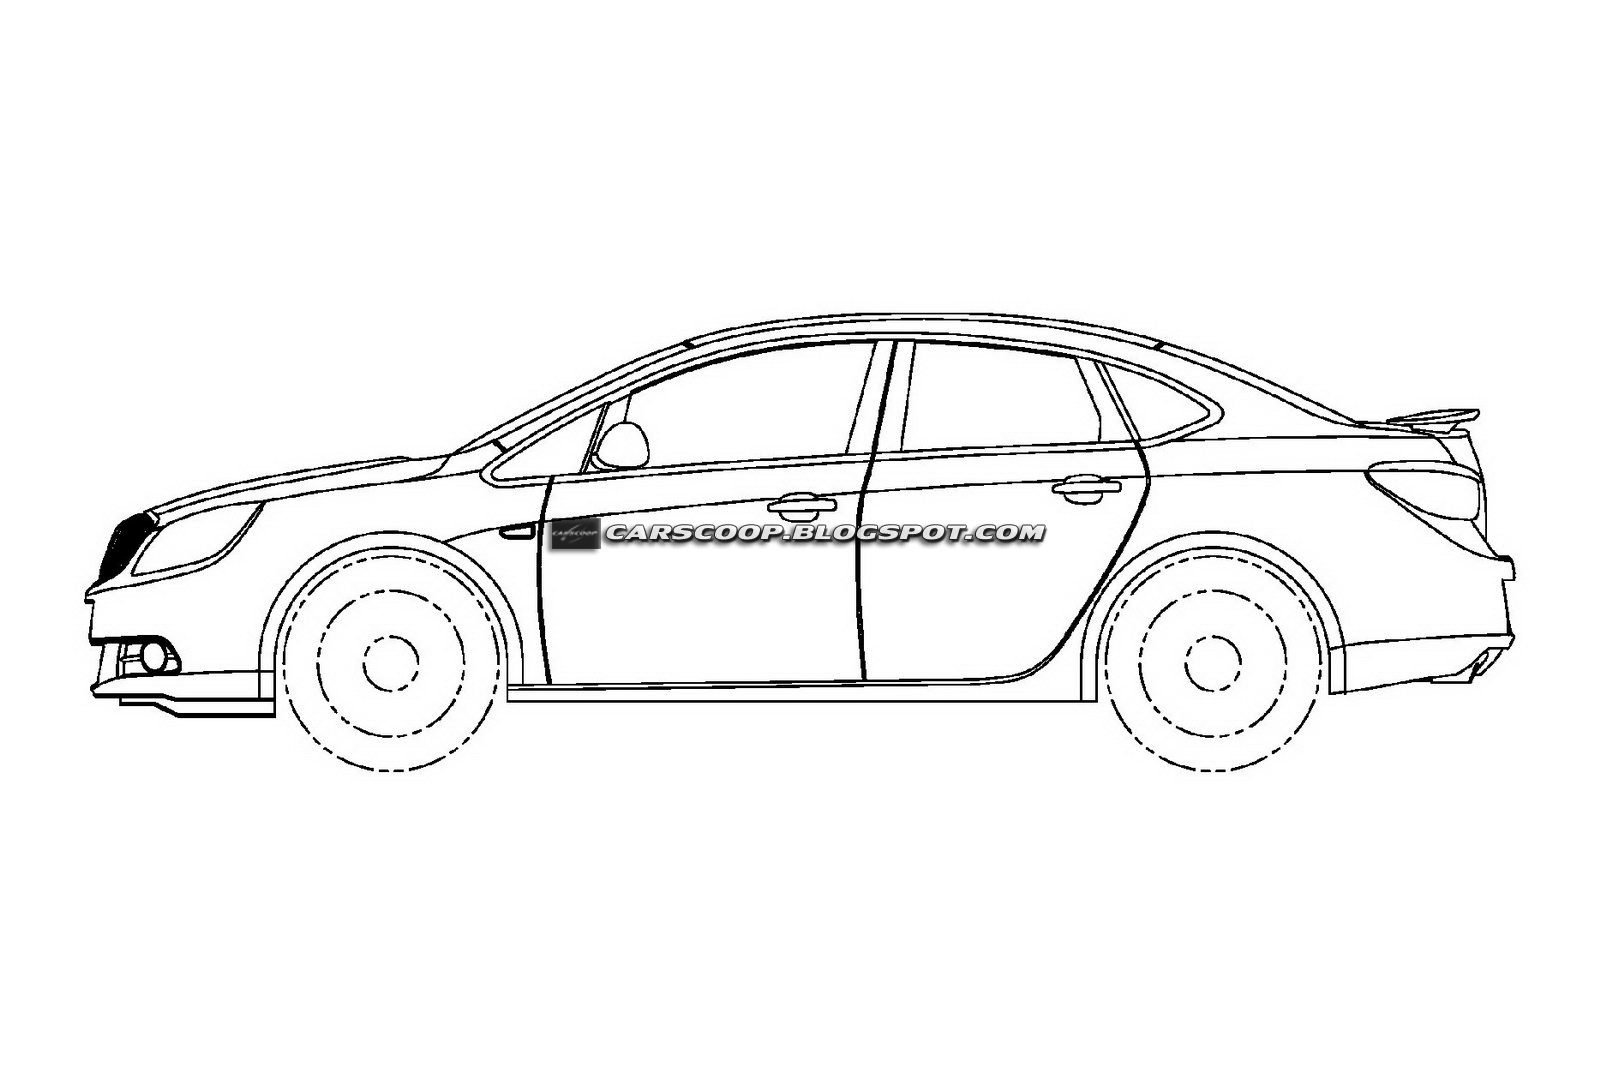 U S Patent Drawings Of Buick Excelle Sedan